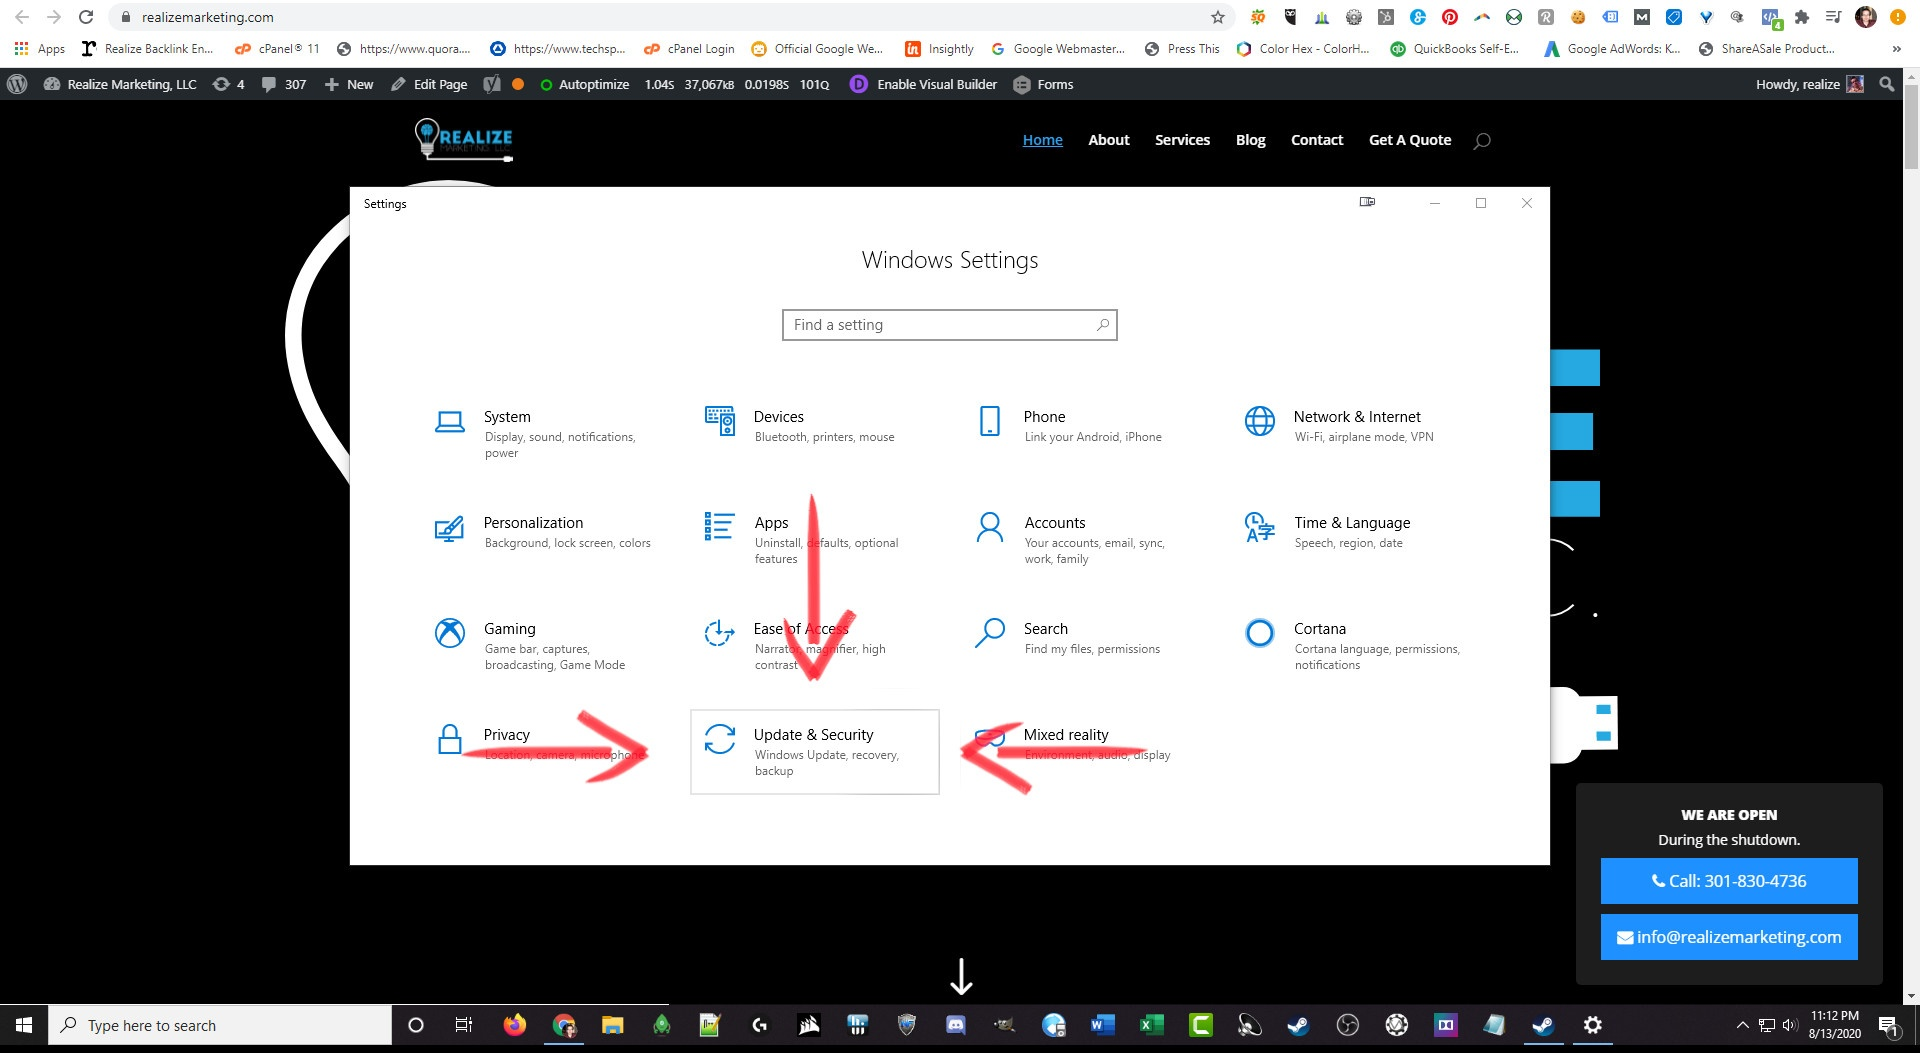 Backing Up Your Data Click update and security